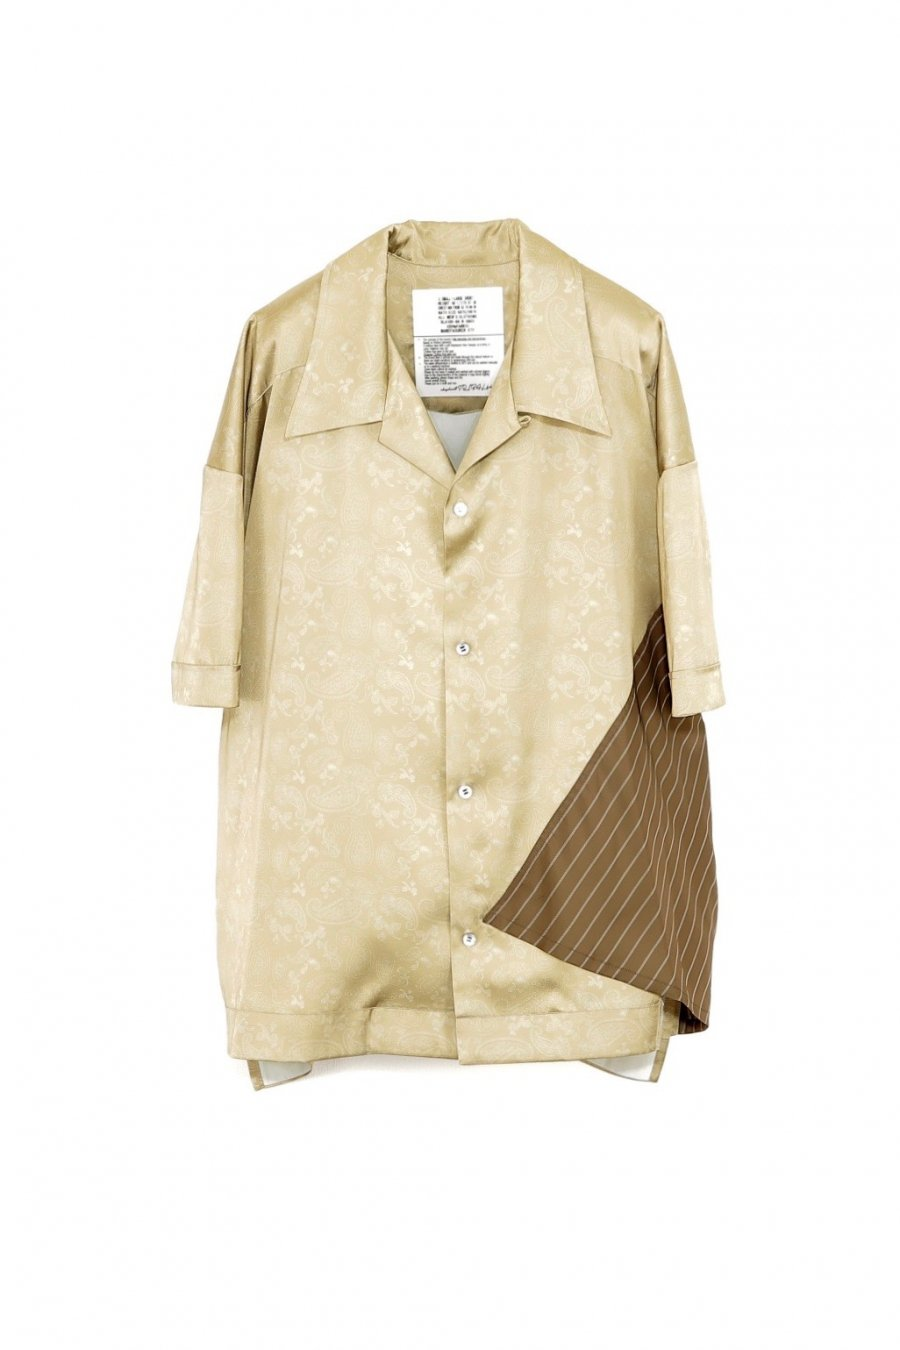 elephant TRIBAL fabrics  Out of alignment Resort shirt(BEIGE)<img class='new_mark_img2' src='https://img.shop-pro.jp/img/new/icons15.gif' style='border:none;display:inline;margin:0px;padding:0px;width:auto;' />